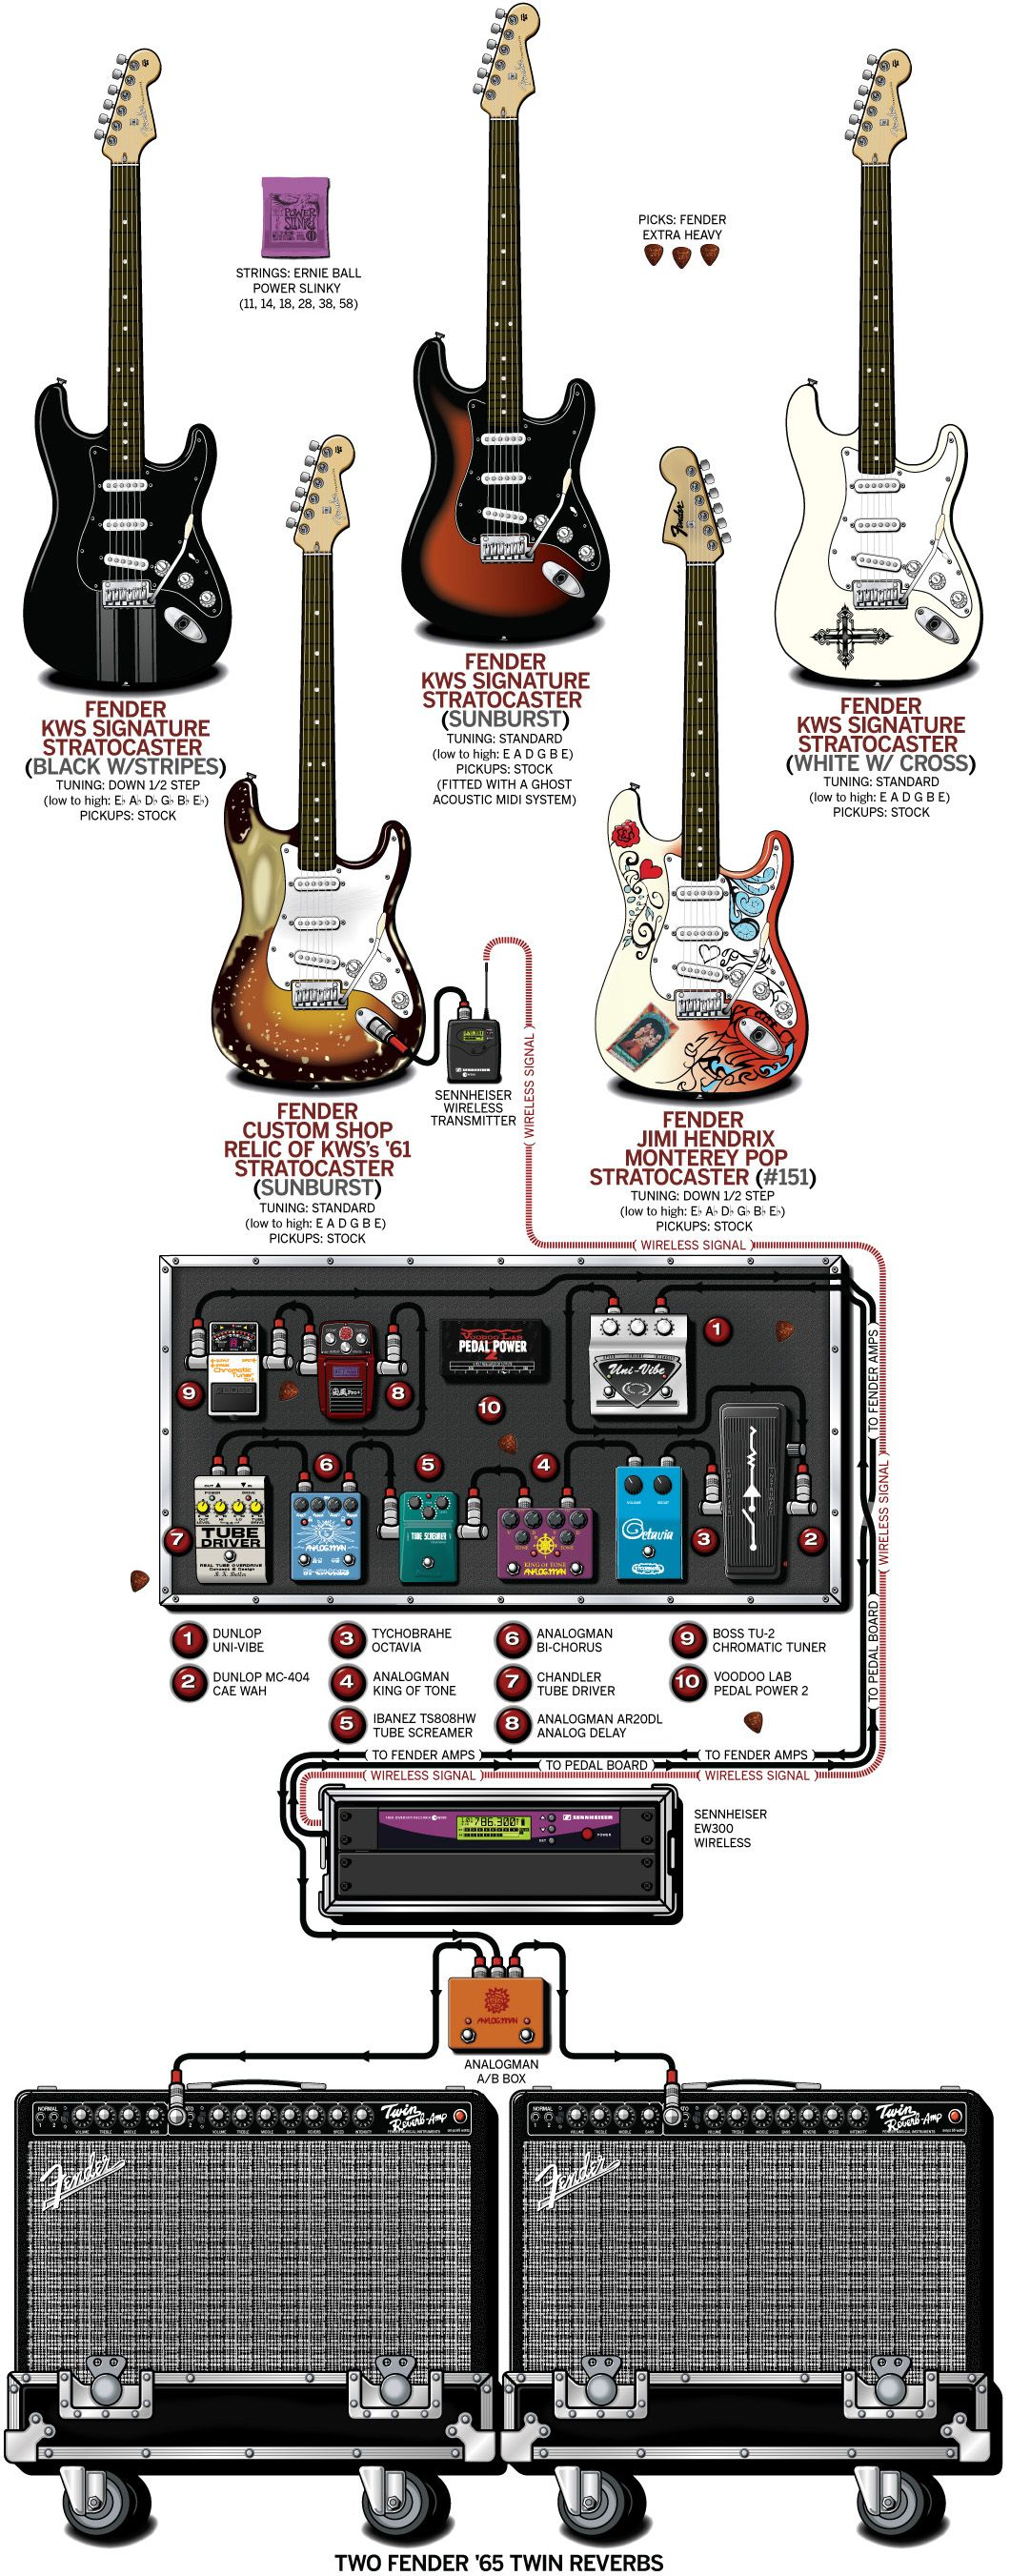 A Detailed Gear Diagram Of Kenny Wayne Shepherds Stage Setup That Acoustic Guitar String Traces The Signal Flow Equipment In His 2010 Rig